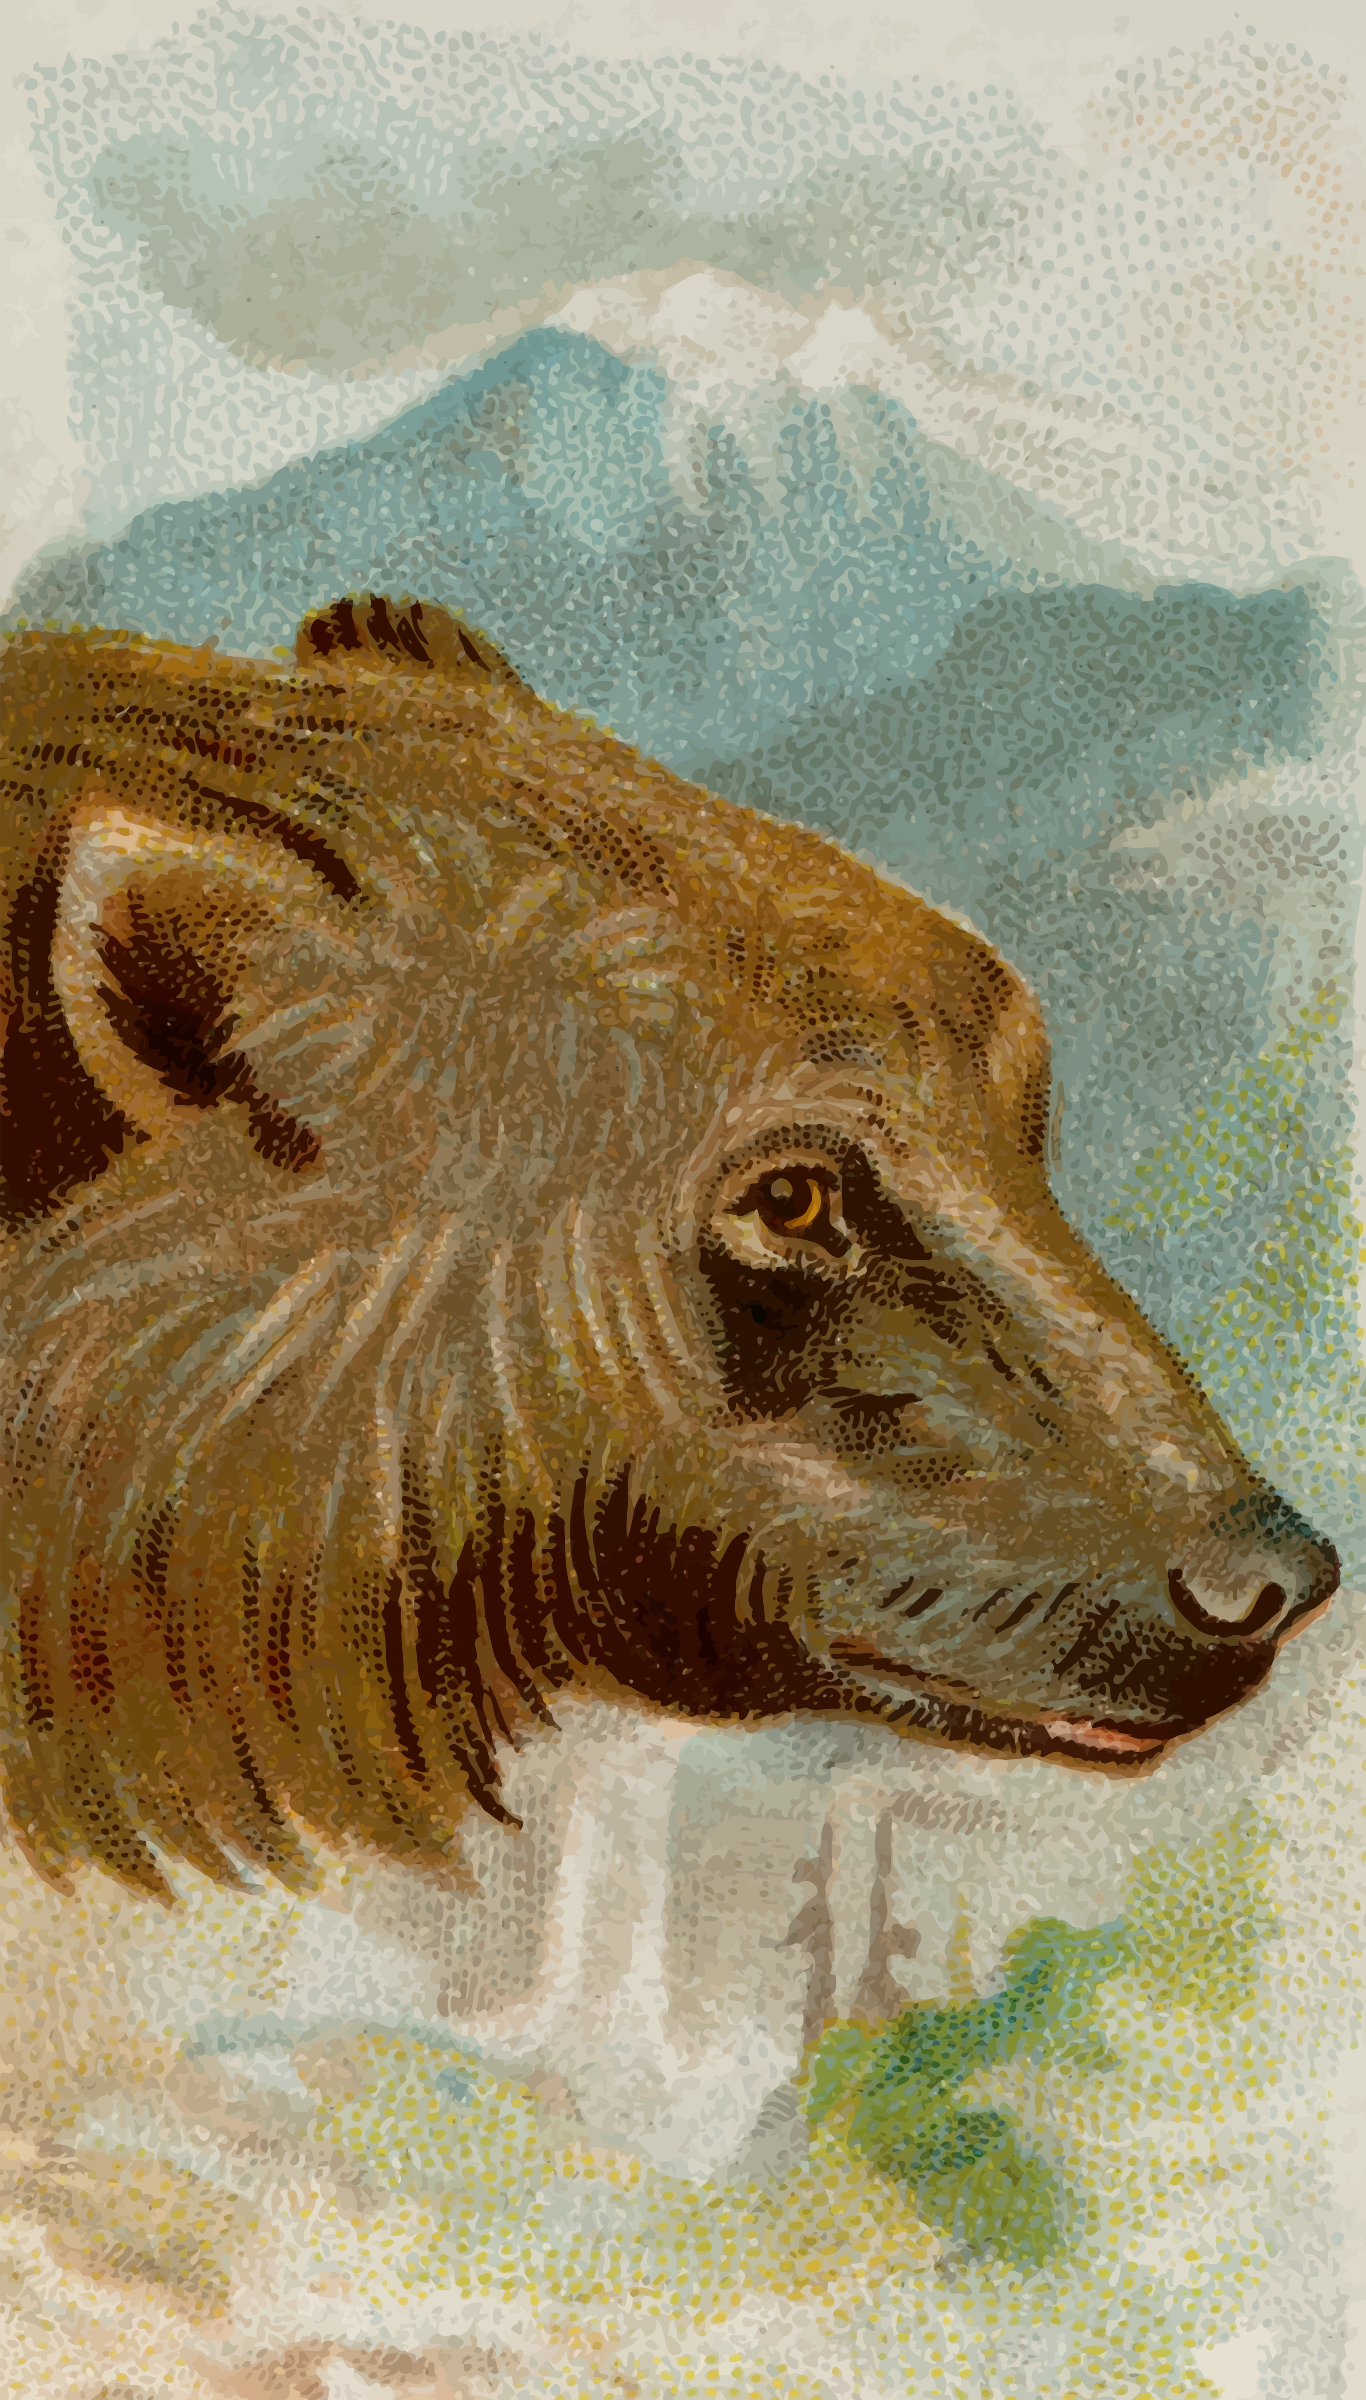 Cigarette card - Grizzly bear by Firkin